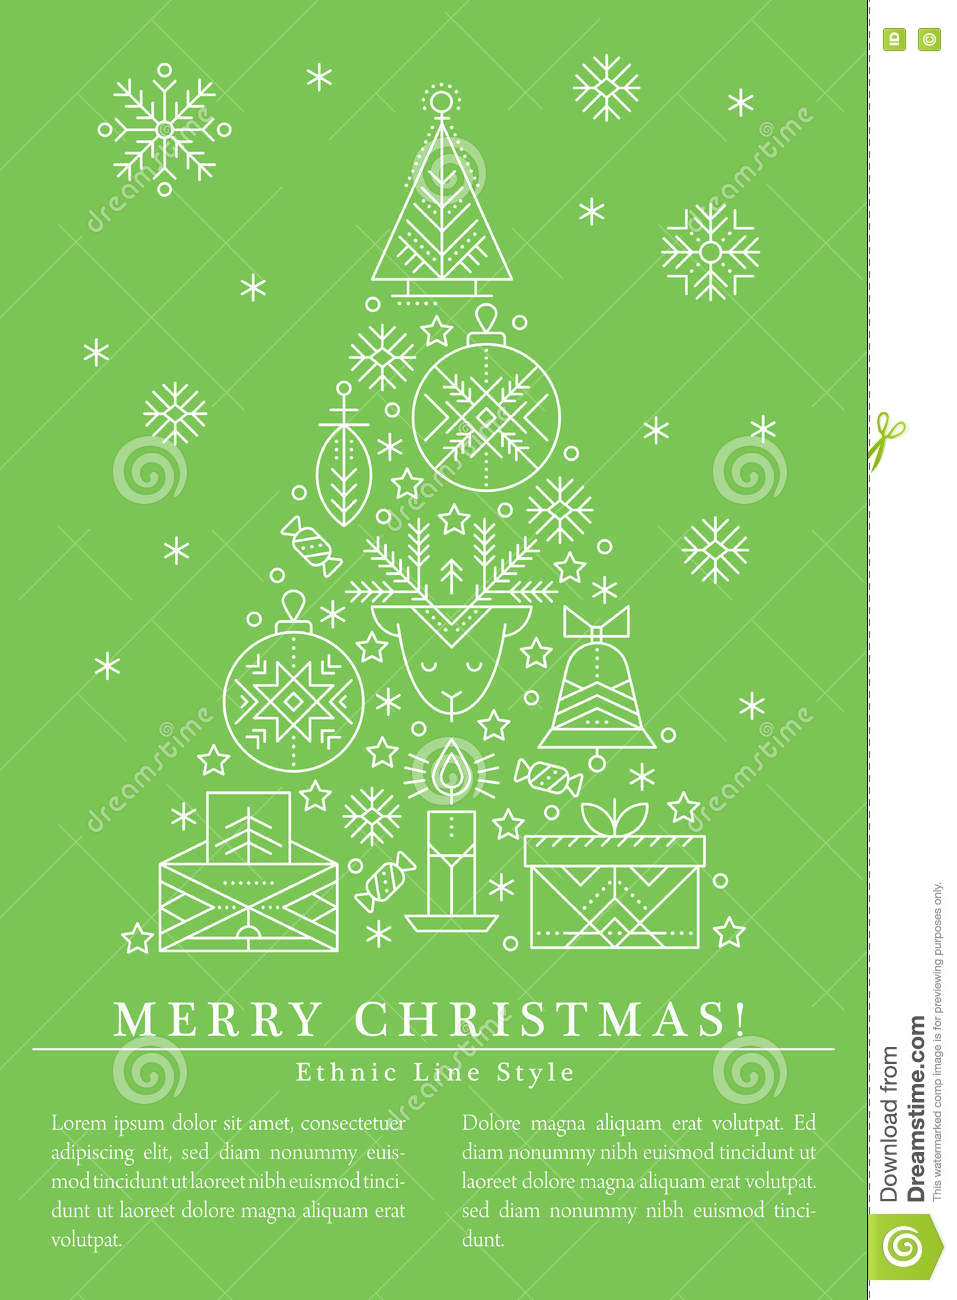 Christmas Greeting Card Template With Outlined Signs Forming A Tree ...